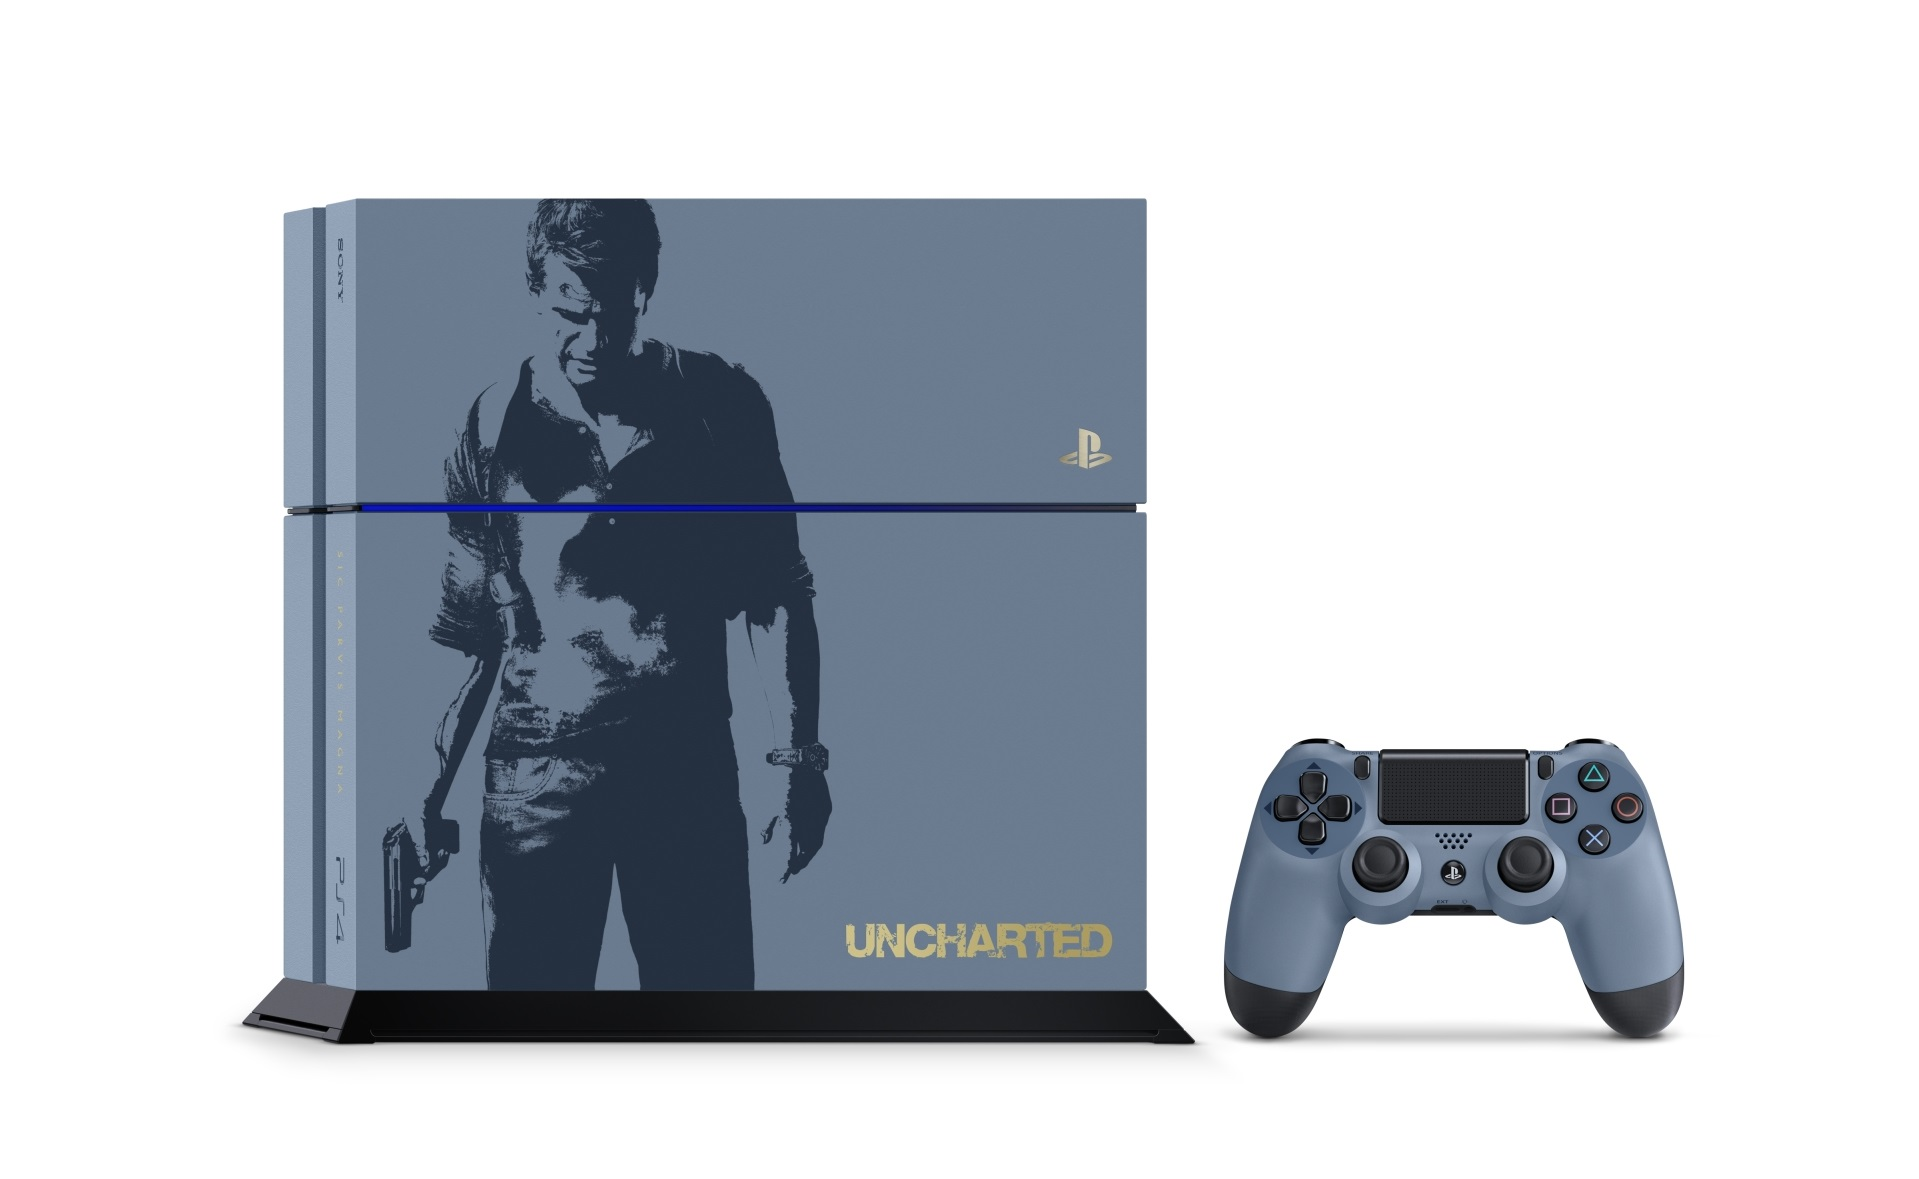 Uncharted 4: A Thief's End - Annonce du pack PS4 1To Uncharted 4 Edition Limitée Pack_u10